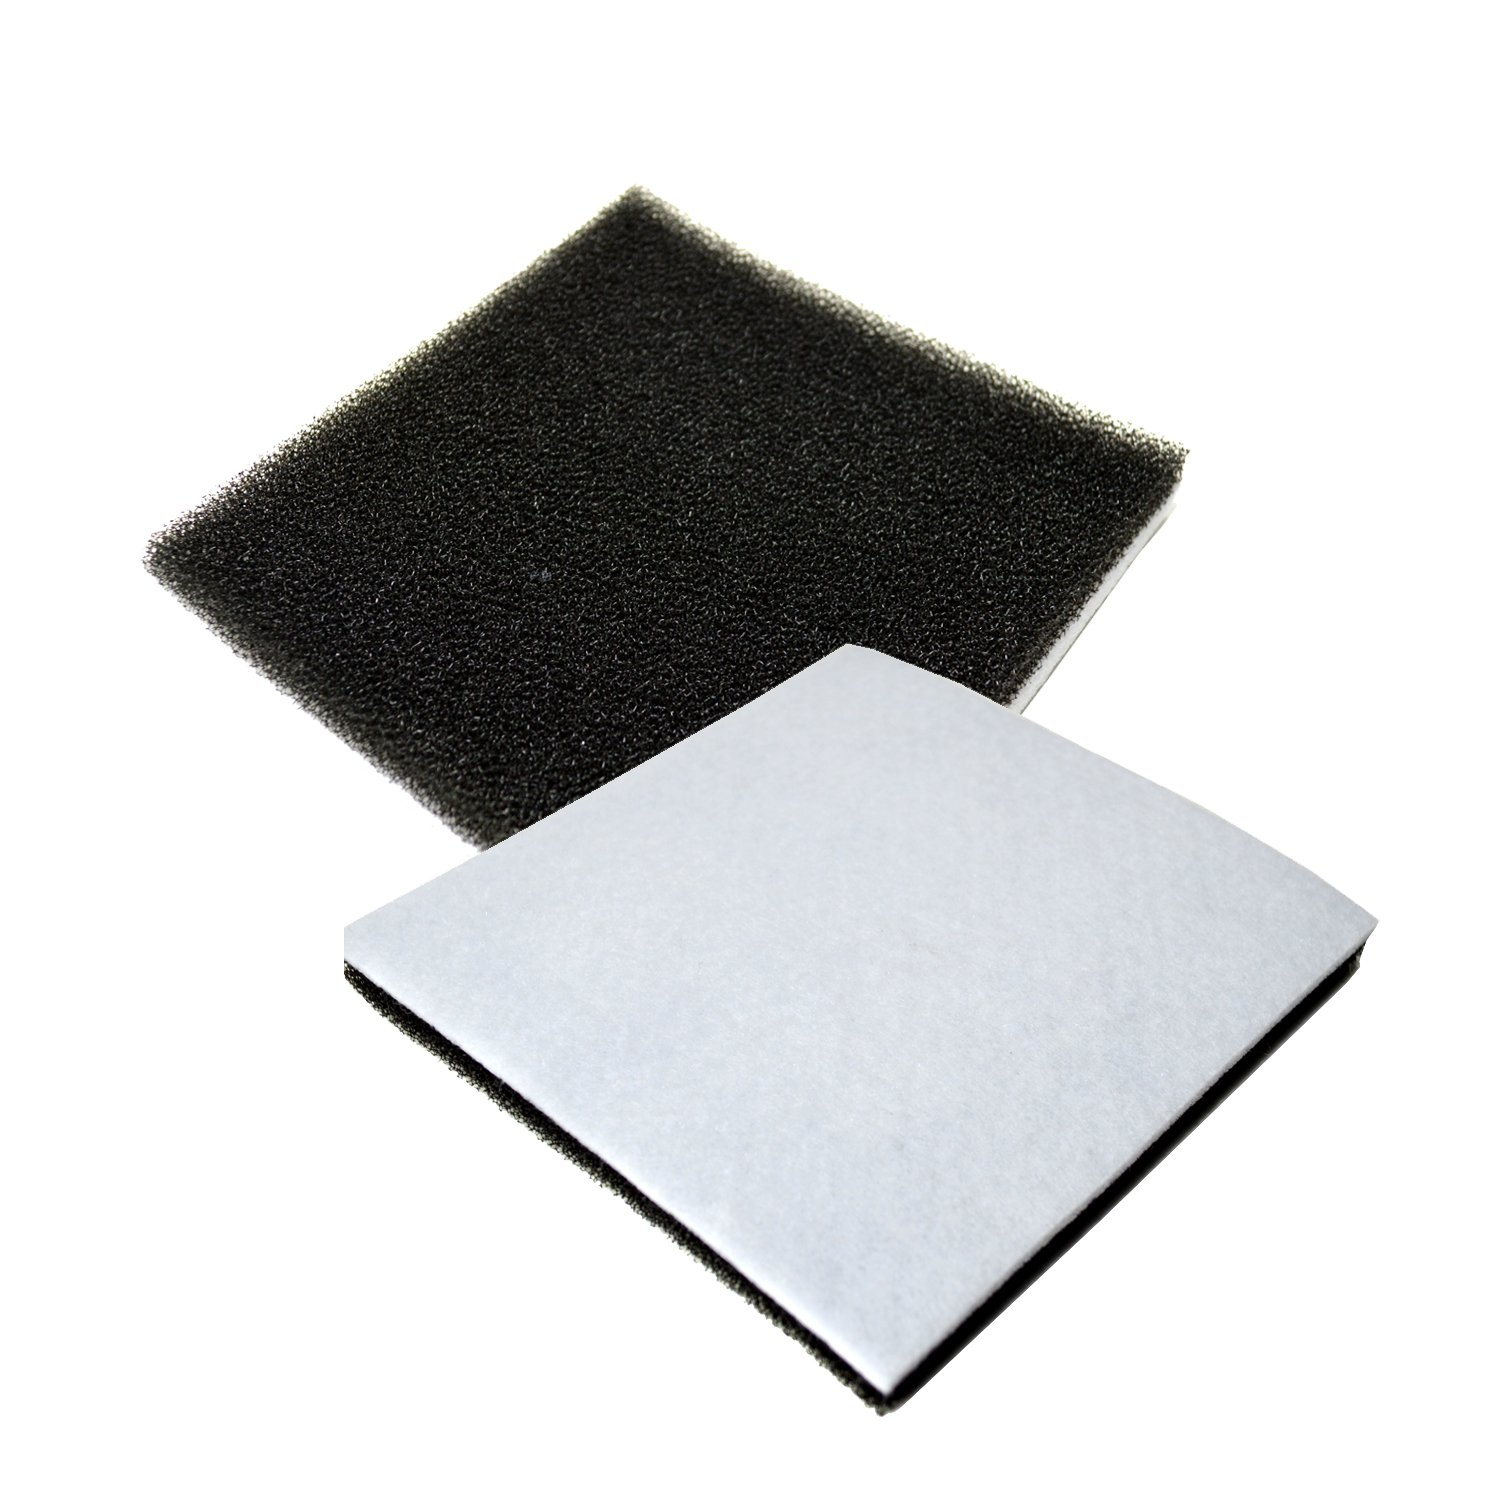 HQRP 2-Pack Foam Filter for Kenmore 116.21714/21714, 116.21514/21514, 116.21614/21614, 116.23613/23613 Canister Vacuum Coaster